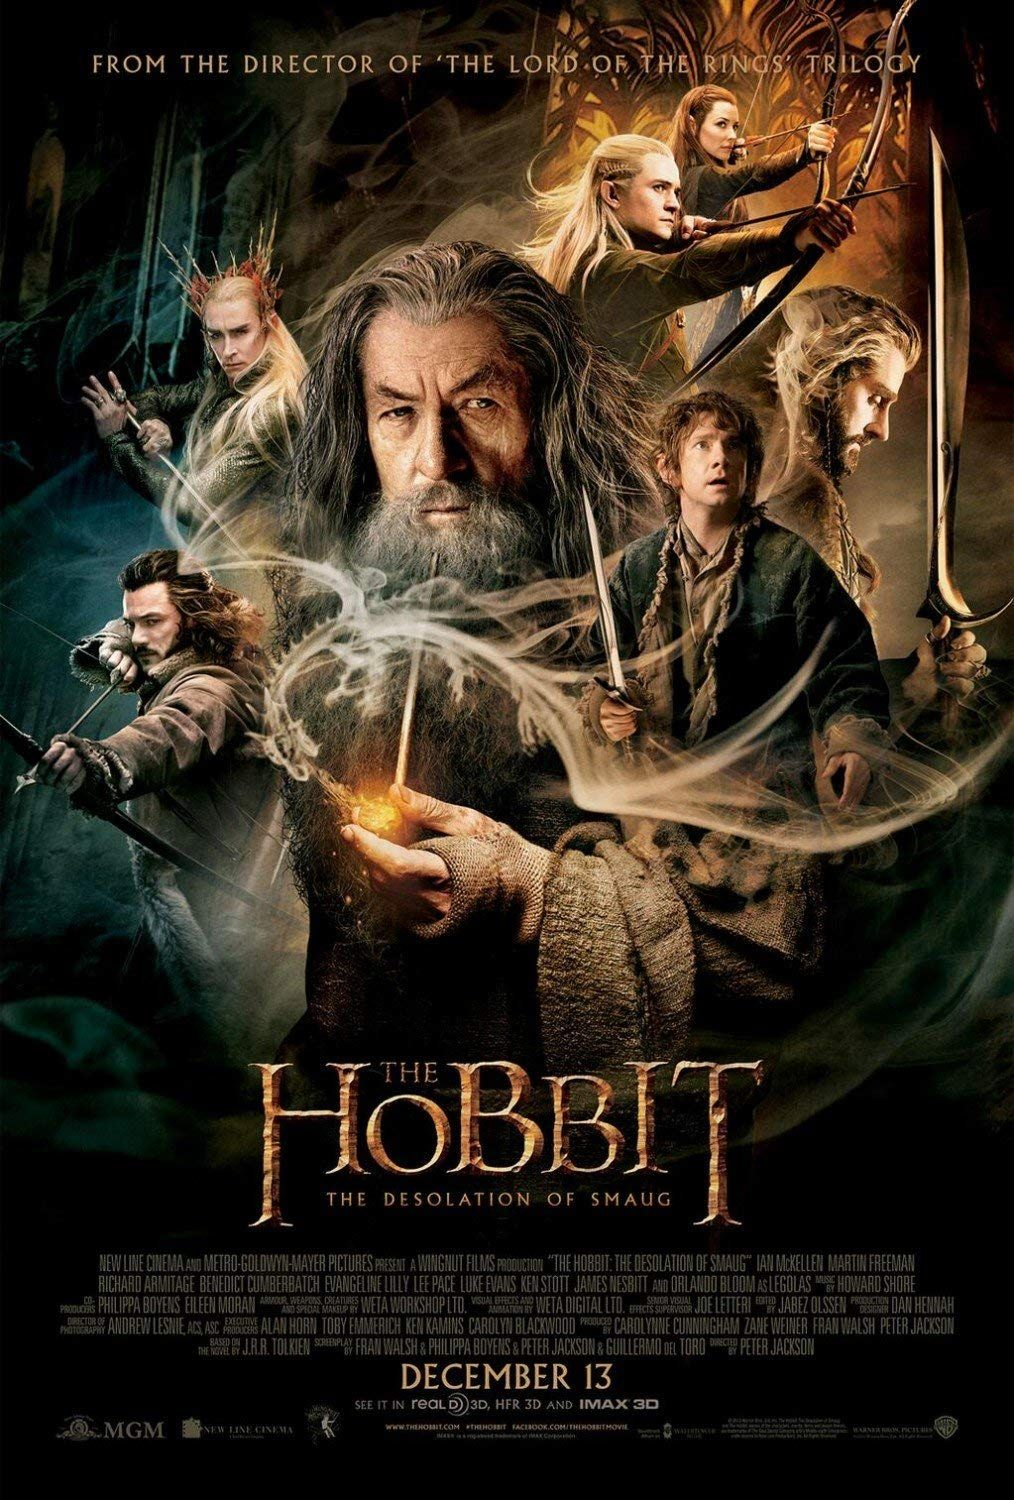 Buy It Now The Hobbit 2 Desolation Of Smaug B 11x17 Inch Promo Movie Poster Posters Prints Hobbit Desolation Of Smaug Desolation Of Smaug The Hobbit